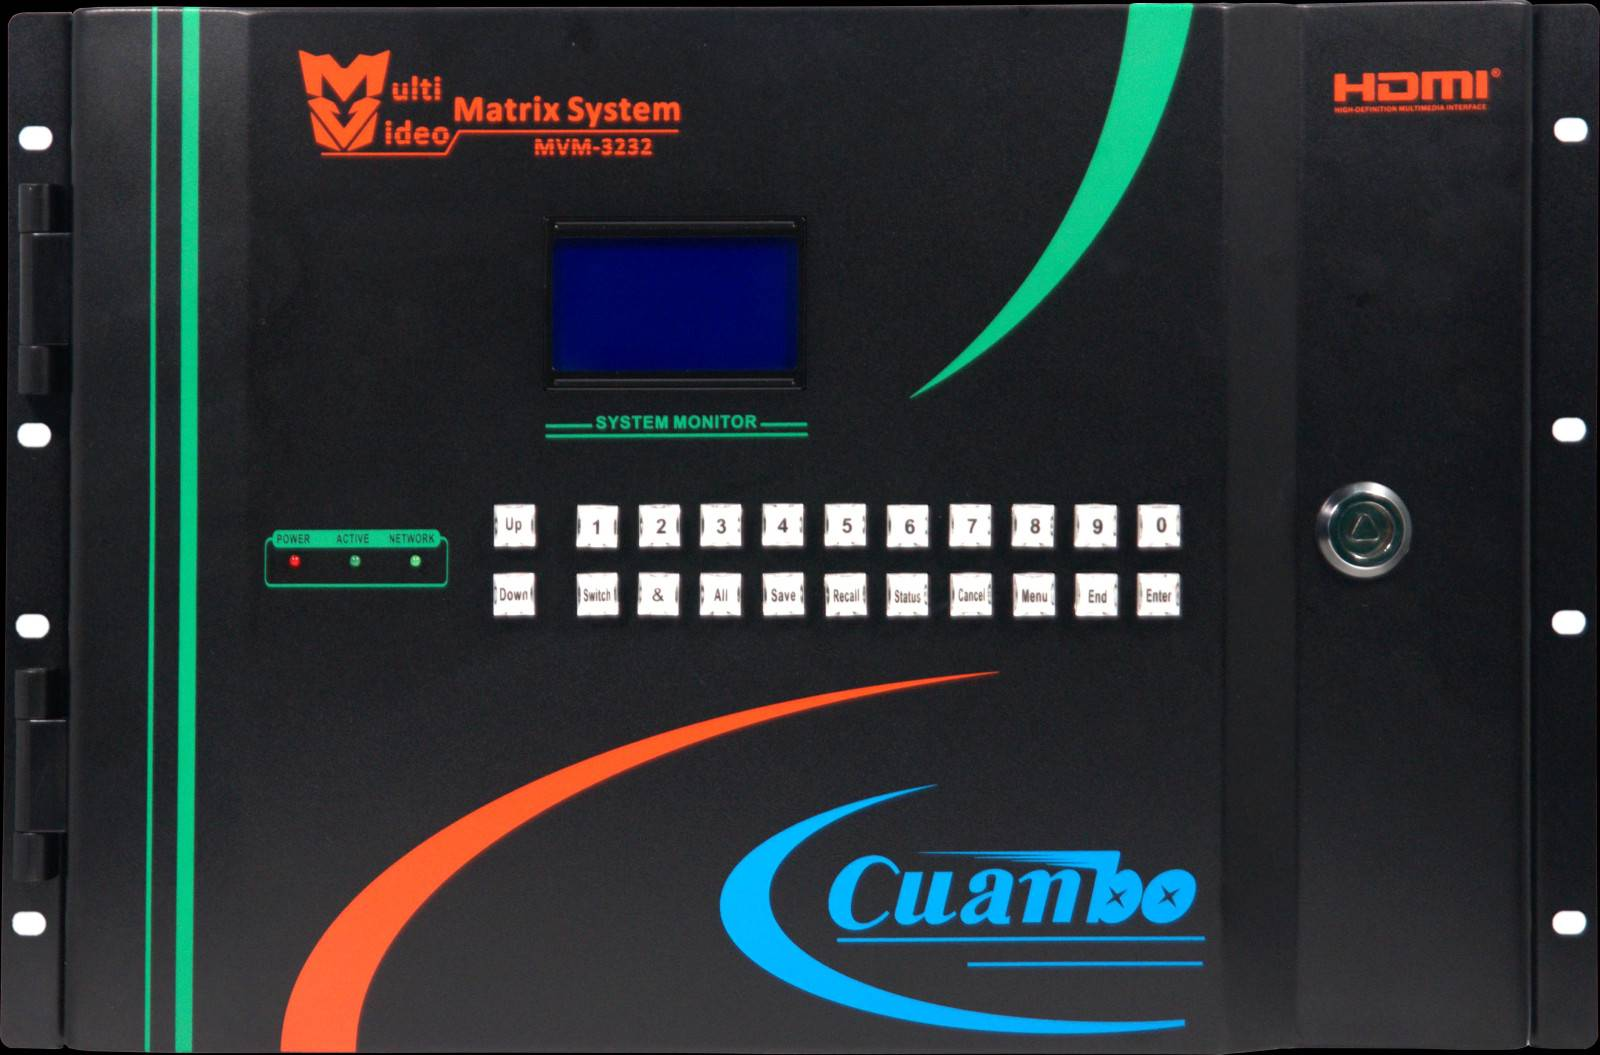 MVM-3232 Matrix Switcher